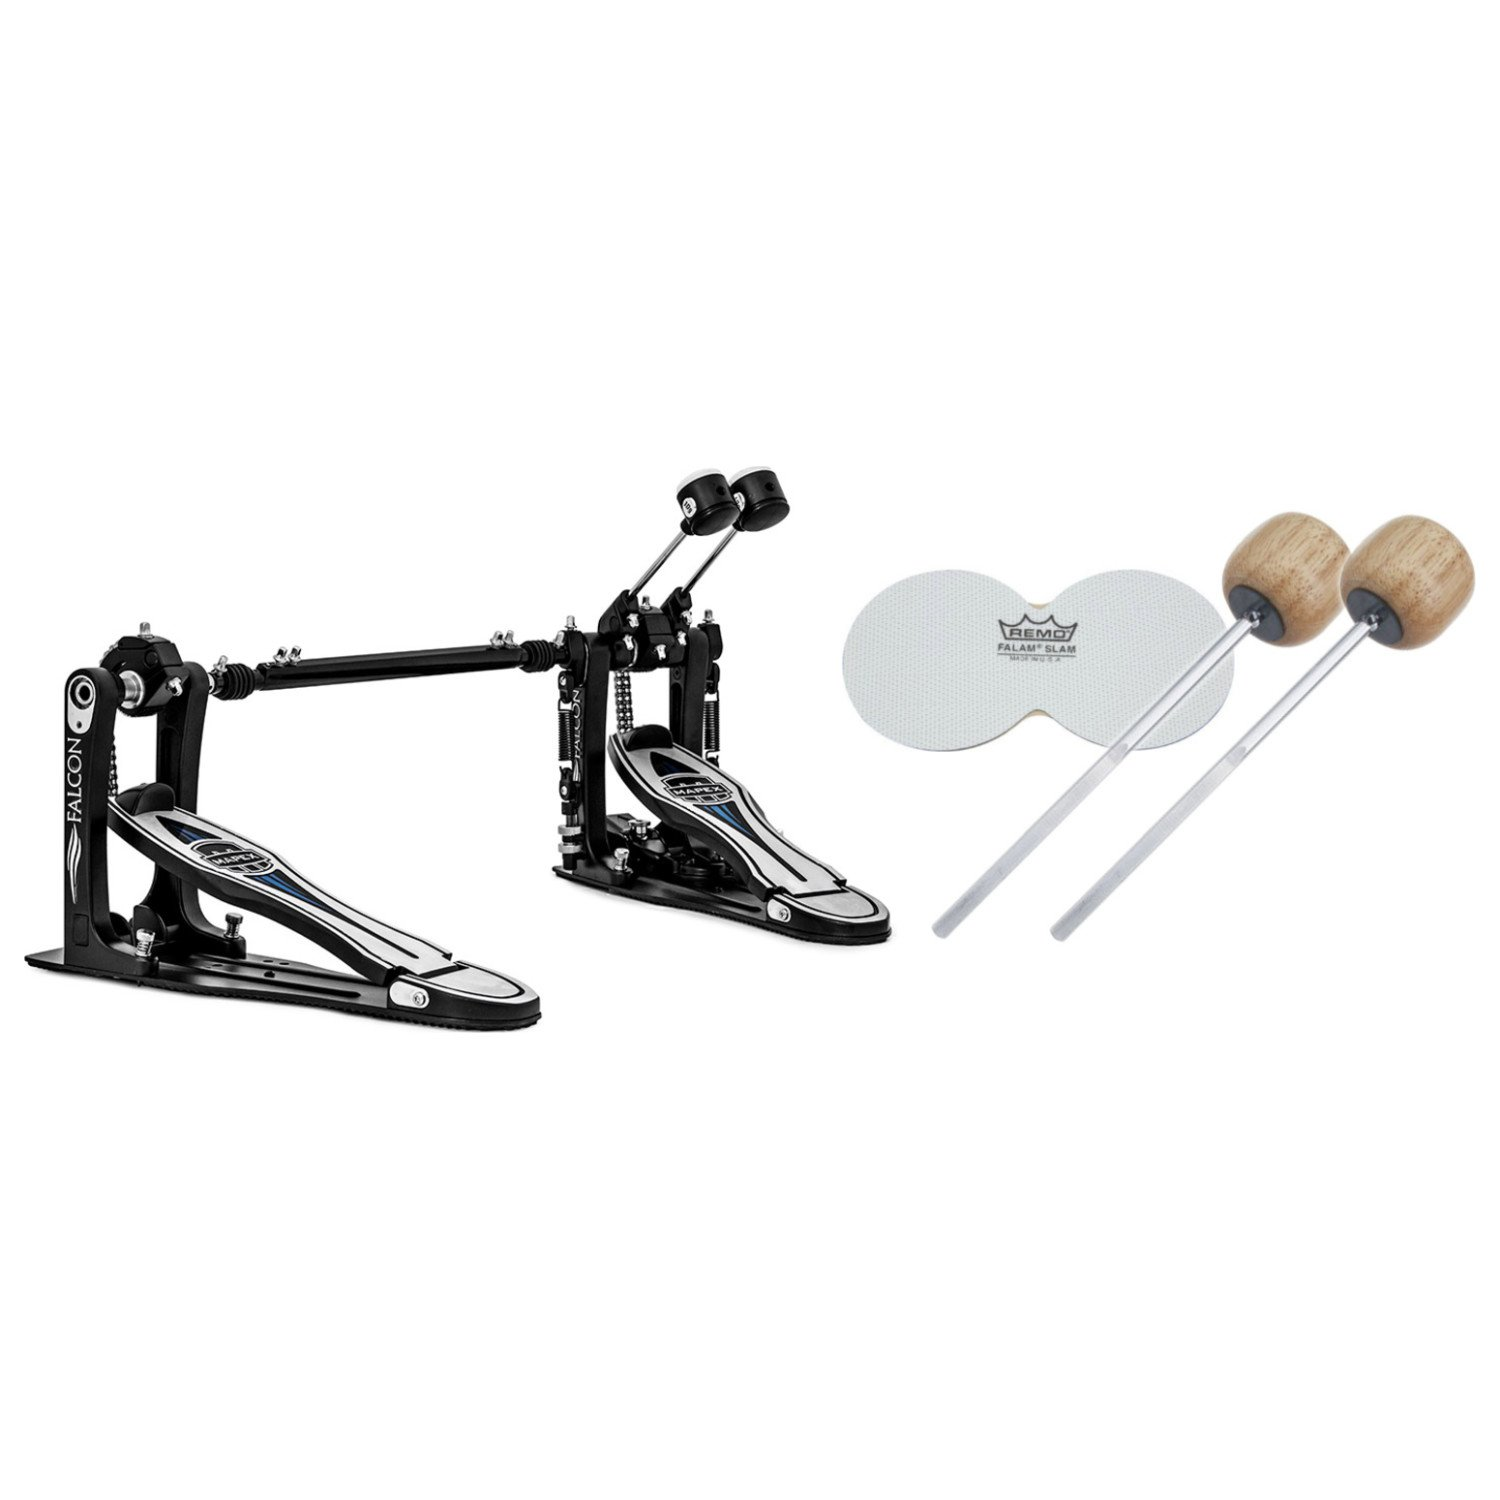 Mapex PF1000TW Falcon Double Bass Drum Pedal w/ Extra Beaters and Impact Patch PF1000TW BUNDLE